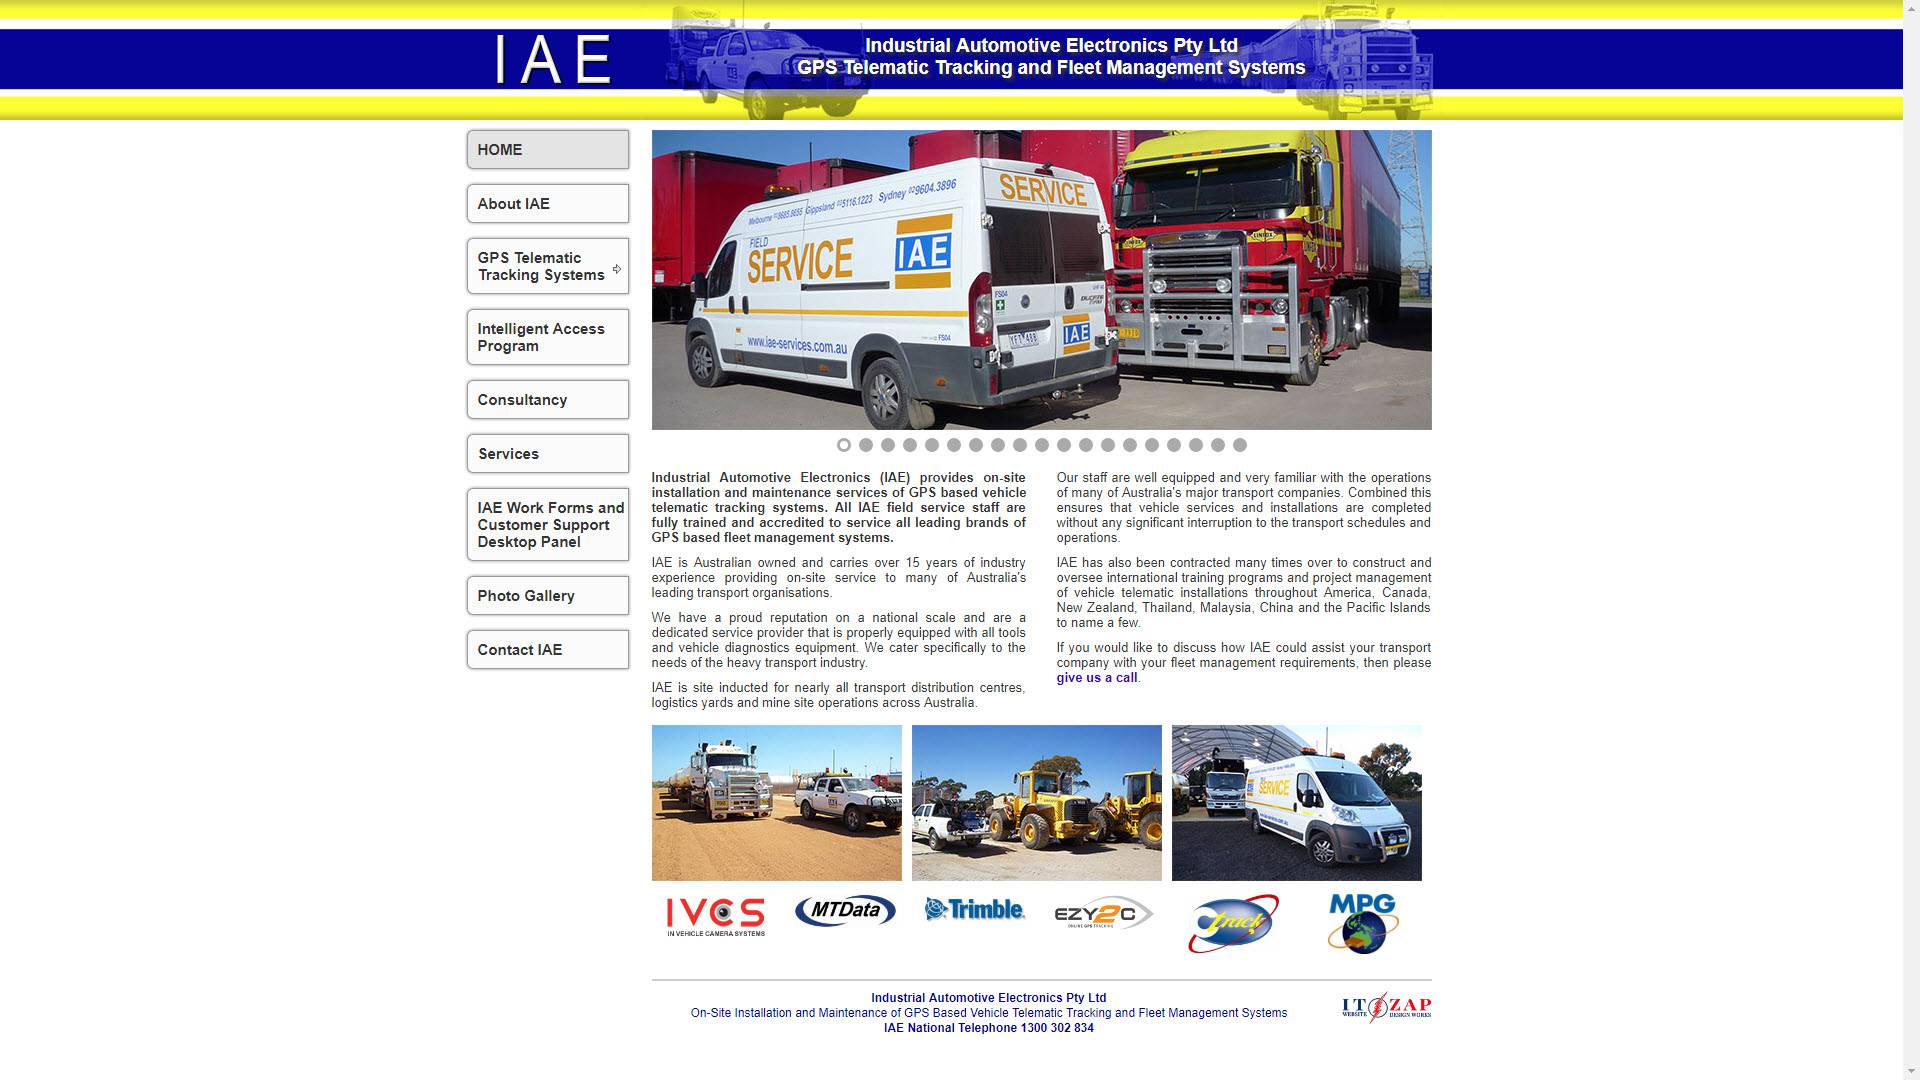 Industrial Automotive Electronics, Sarsfield website